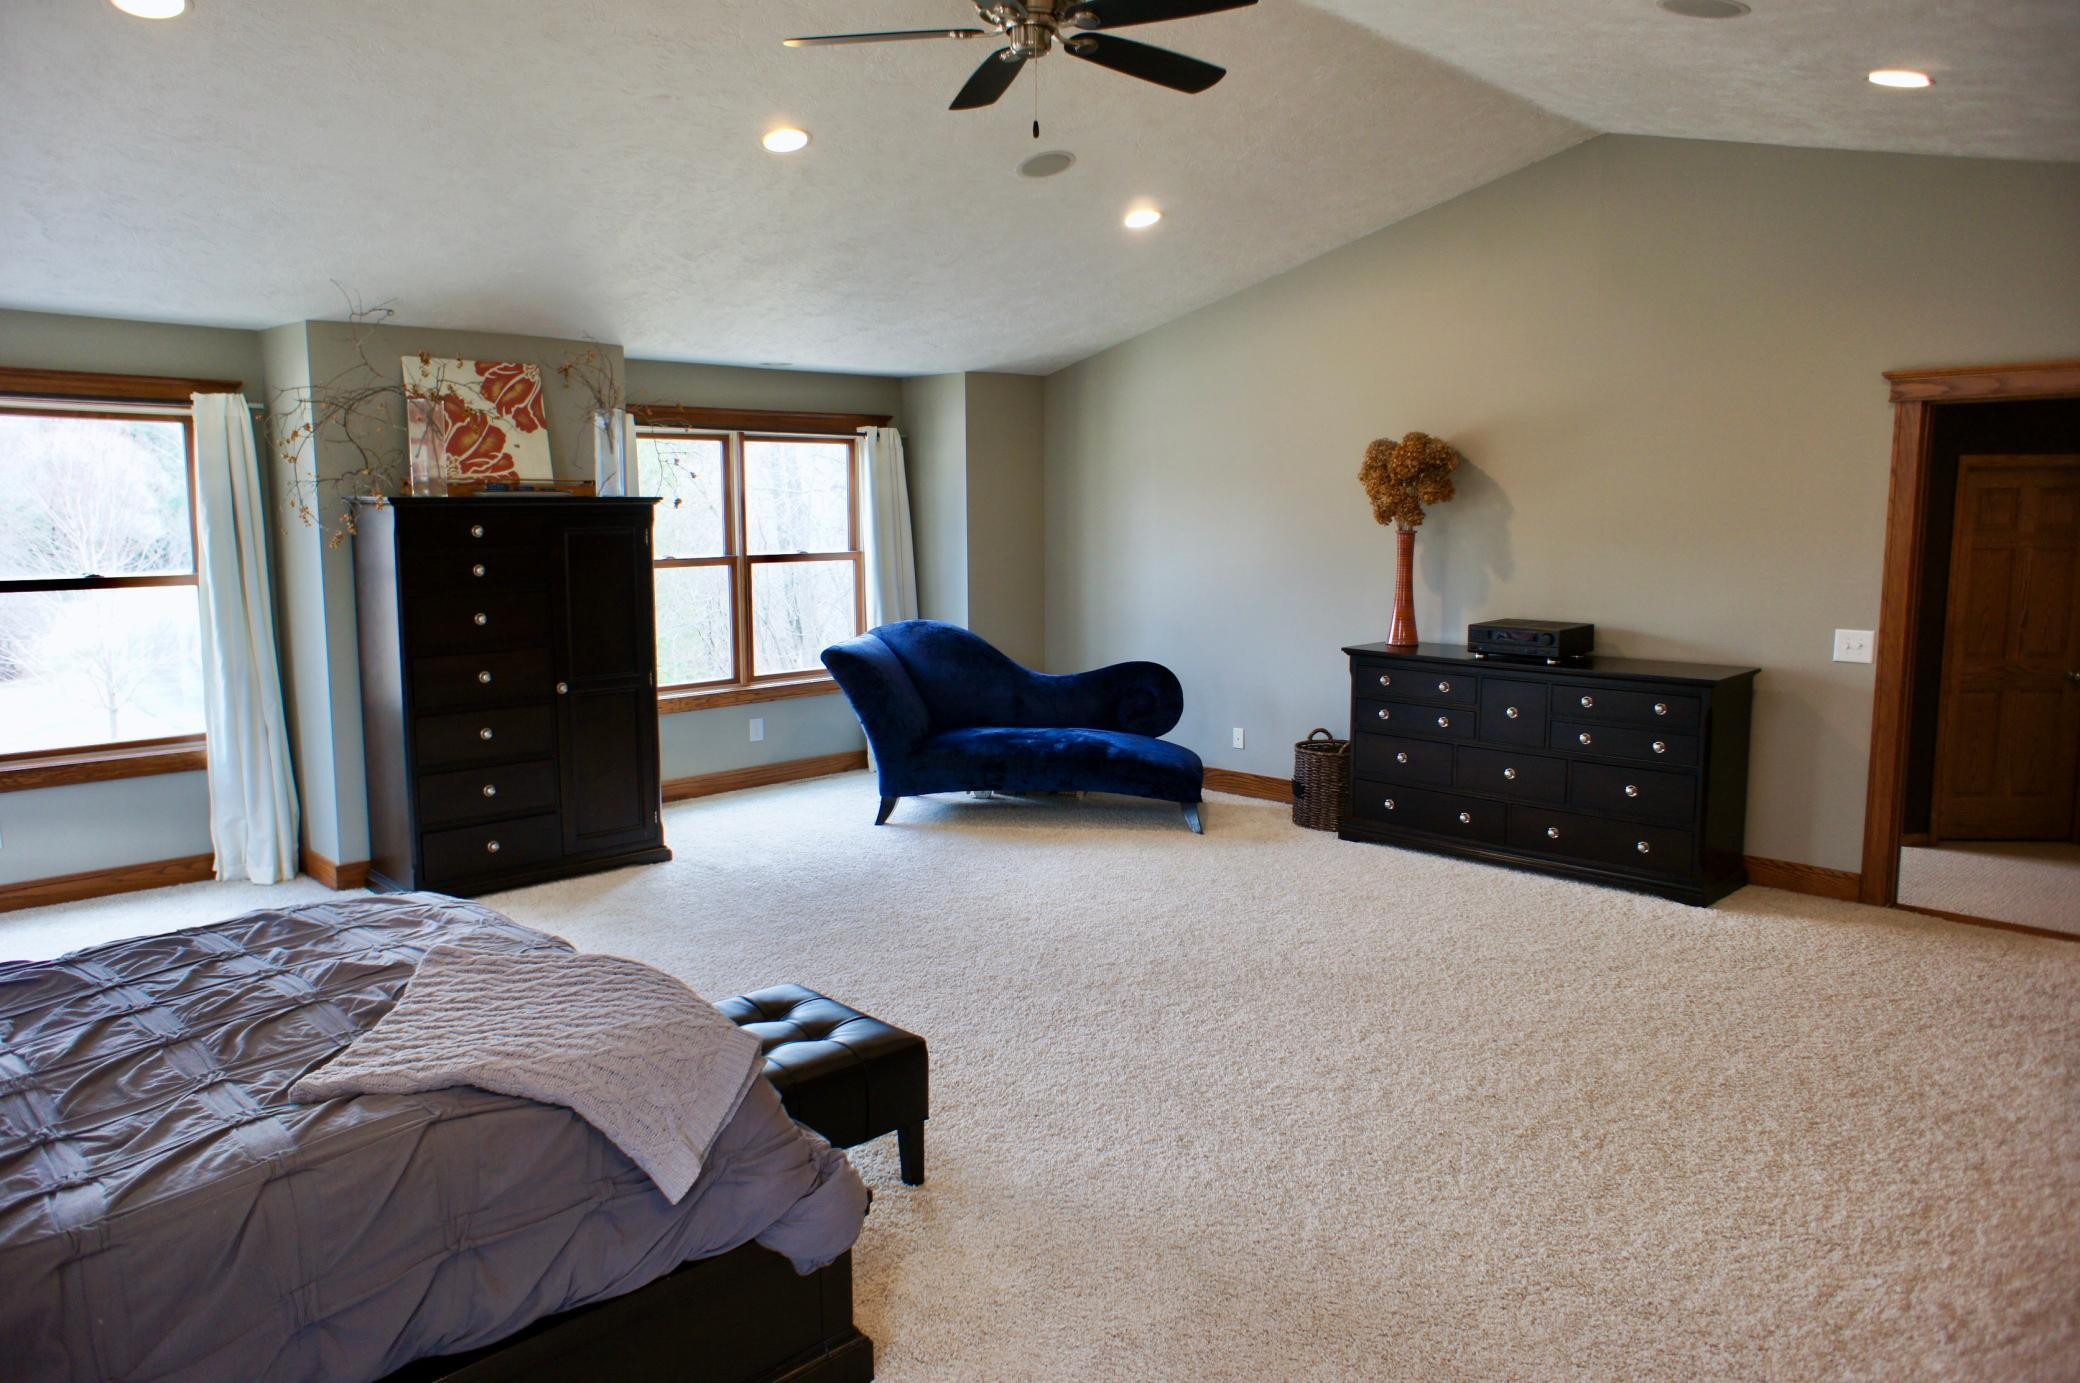 Yes, even a 3rd angle to show just how large this bedroom is.